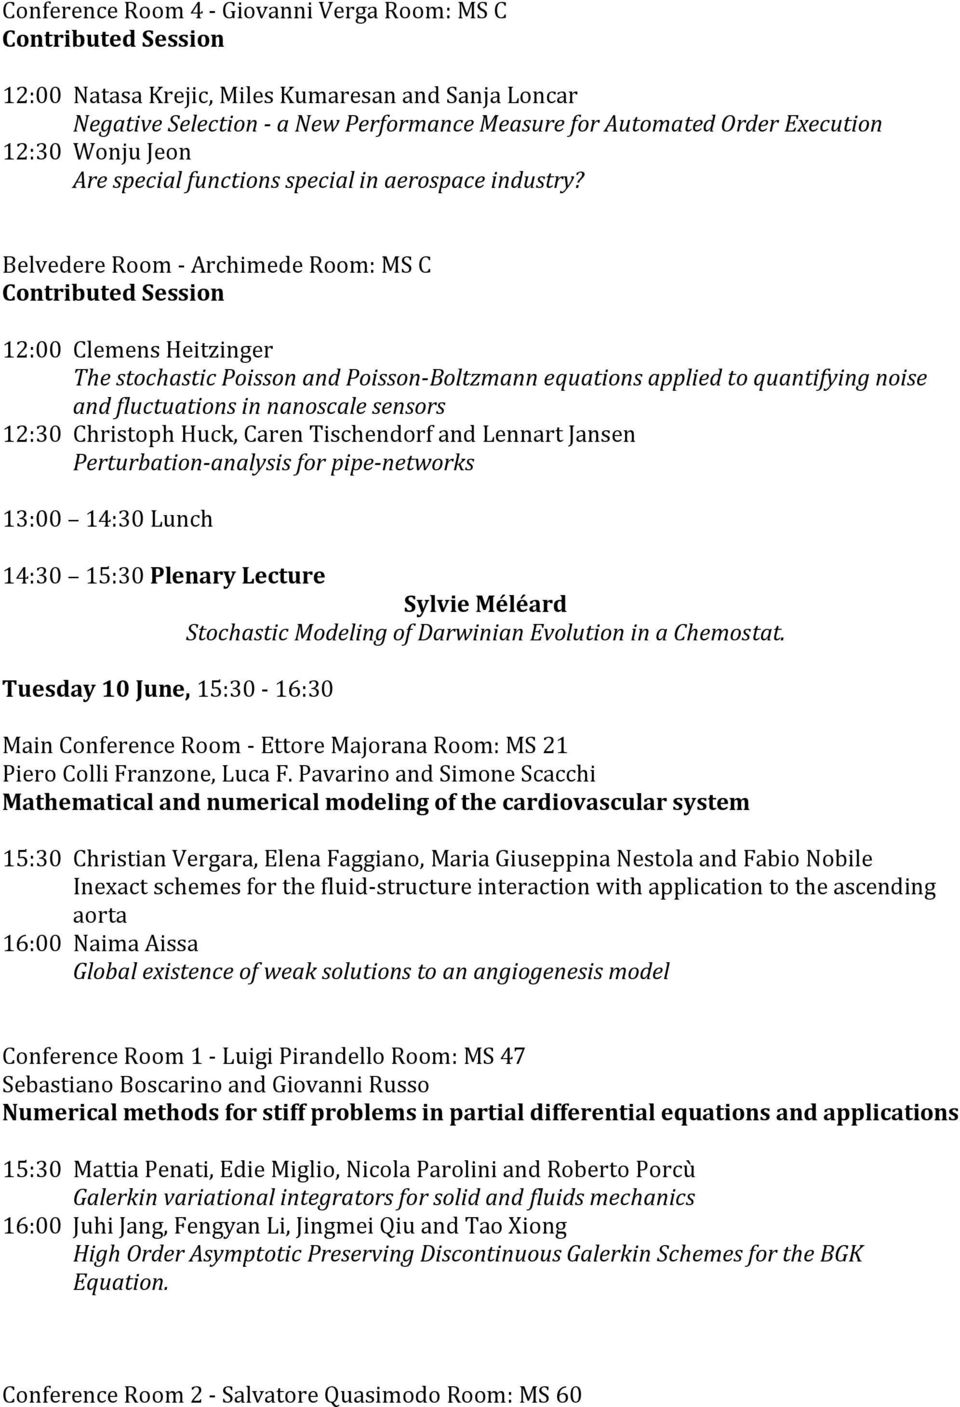 Belvedere Room - Archimede Room: MS C Contributed Session 12:00 Clemens Heitzinger The stochastic Poisson and Poisson-Boltzmann equations applied to quantifying noise and fluctuations in nanoscale